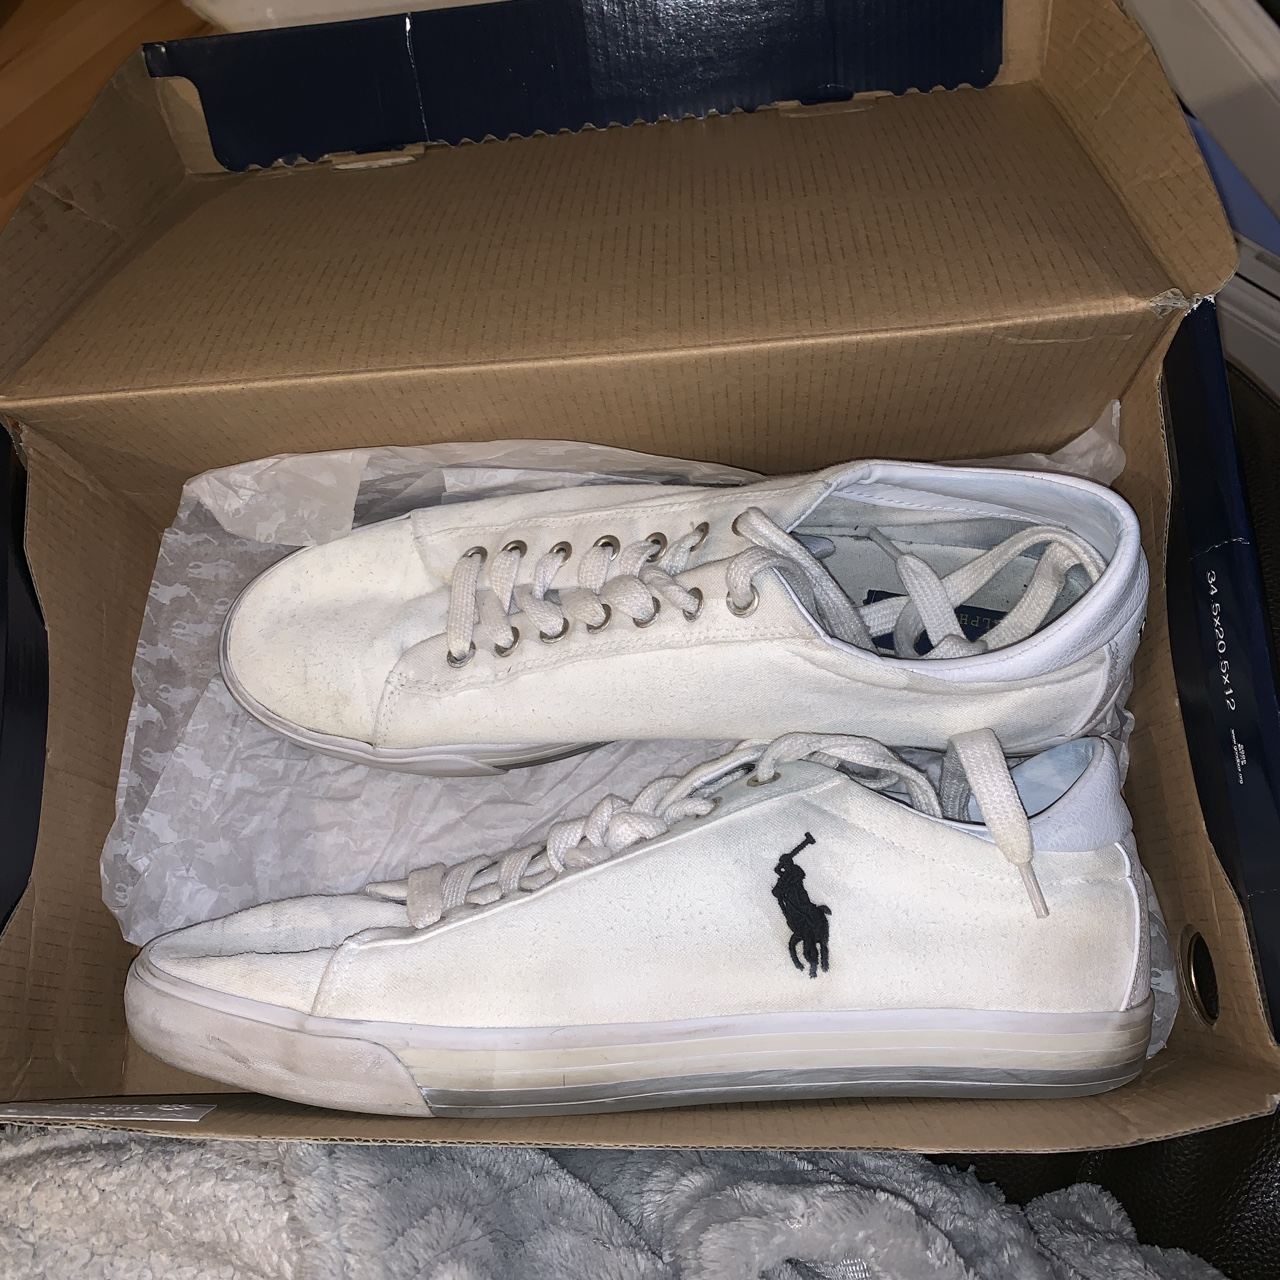 Polo Ralph Lauren shoes size 10, some